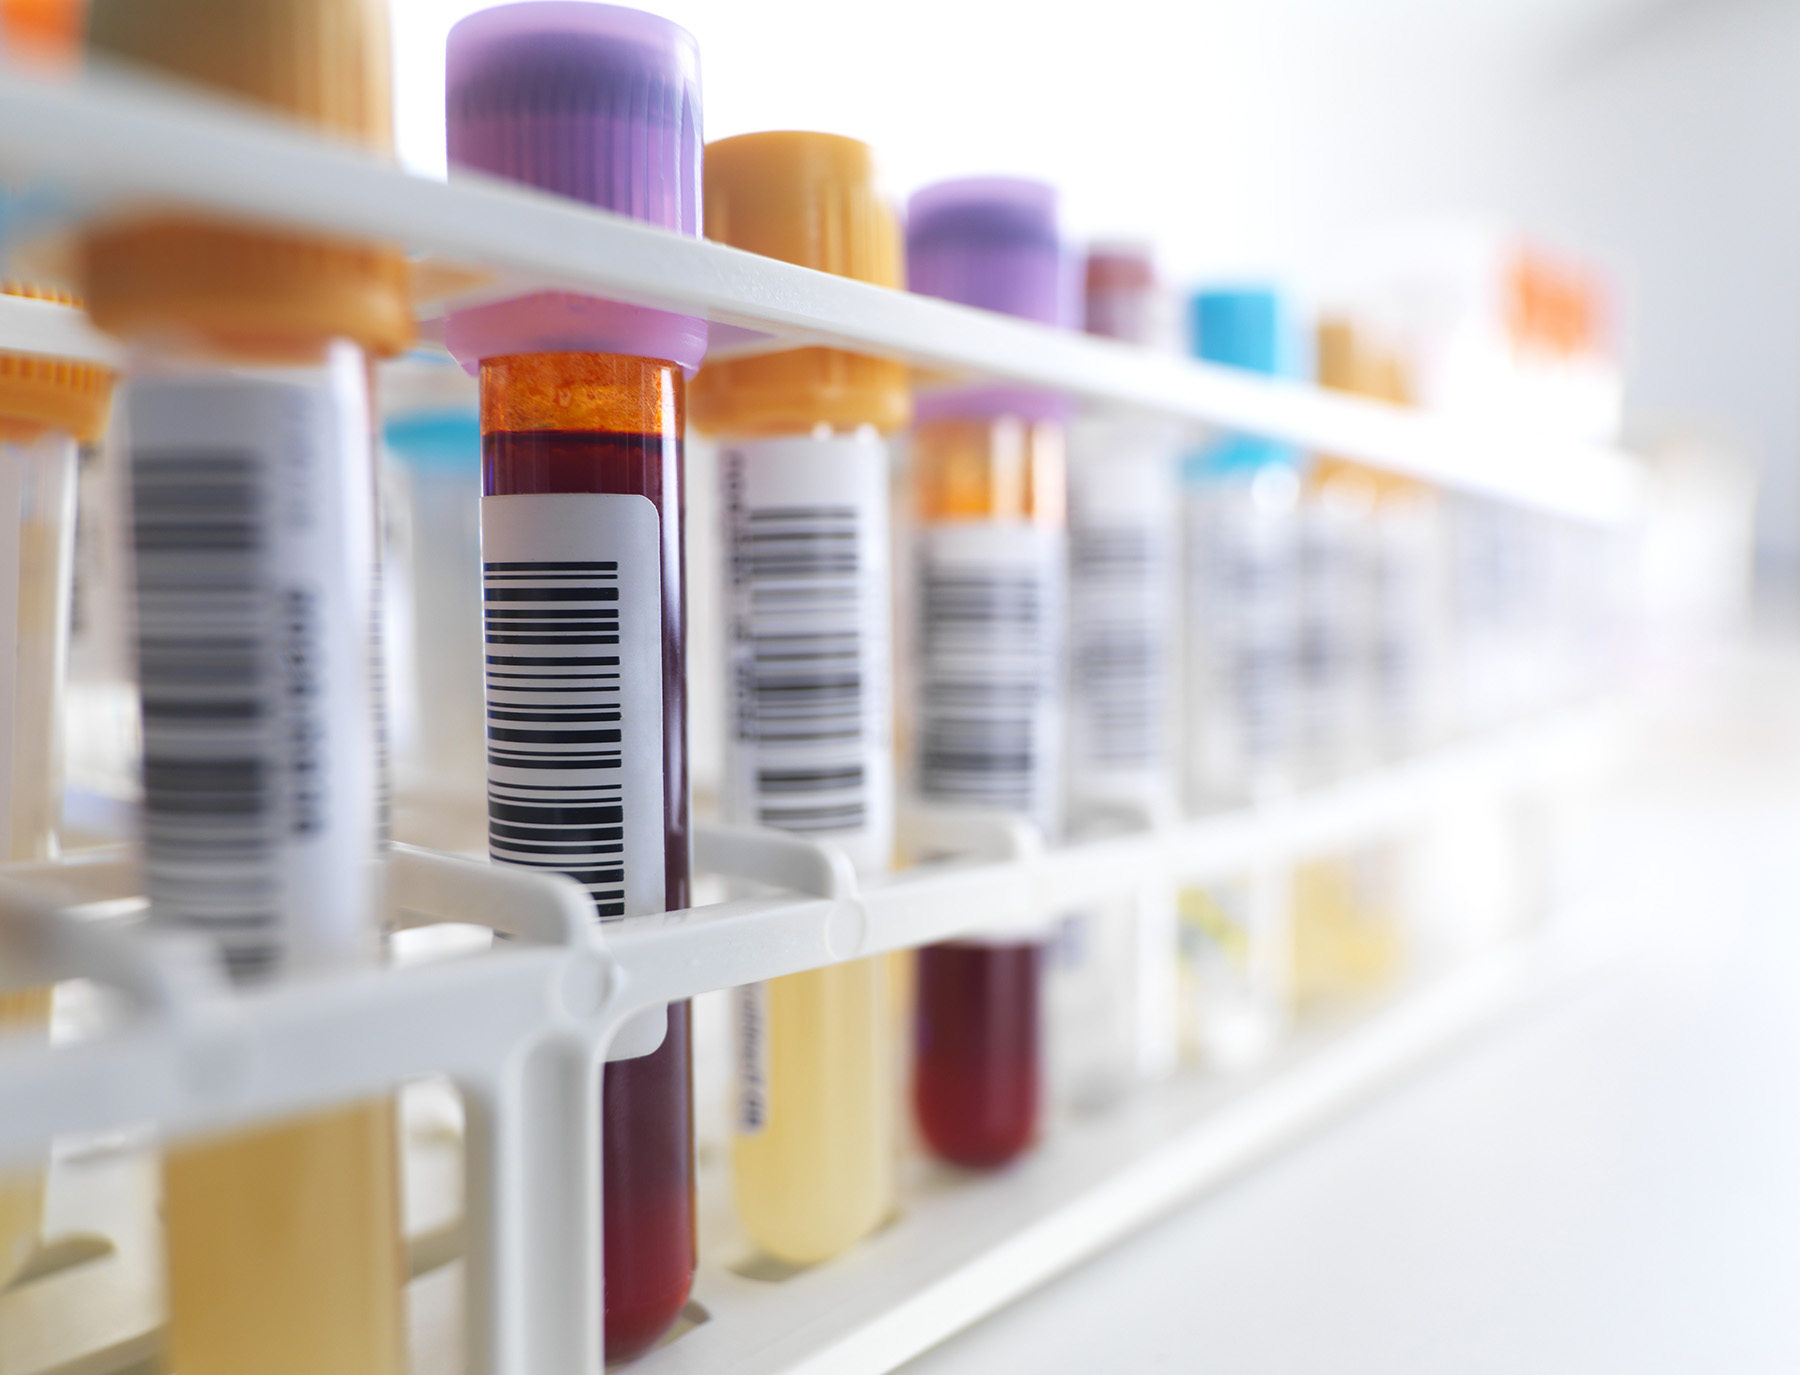 Blood samples in a test tube rack.